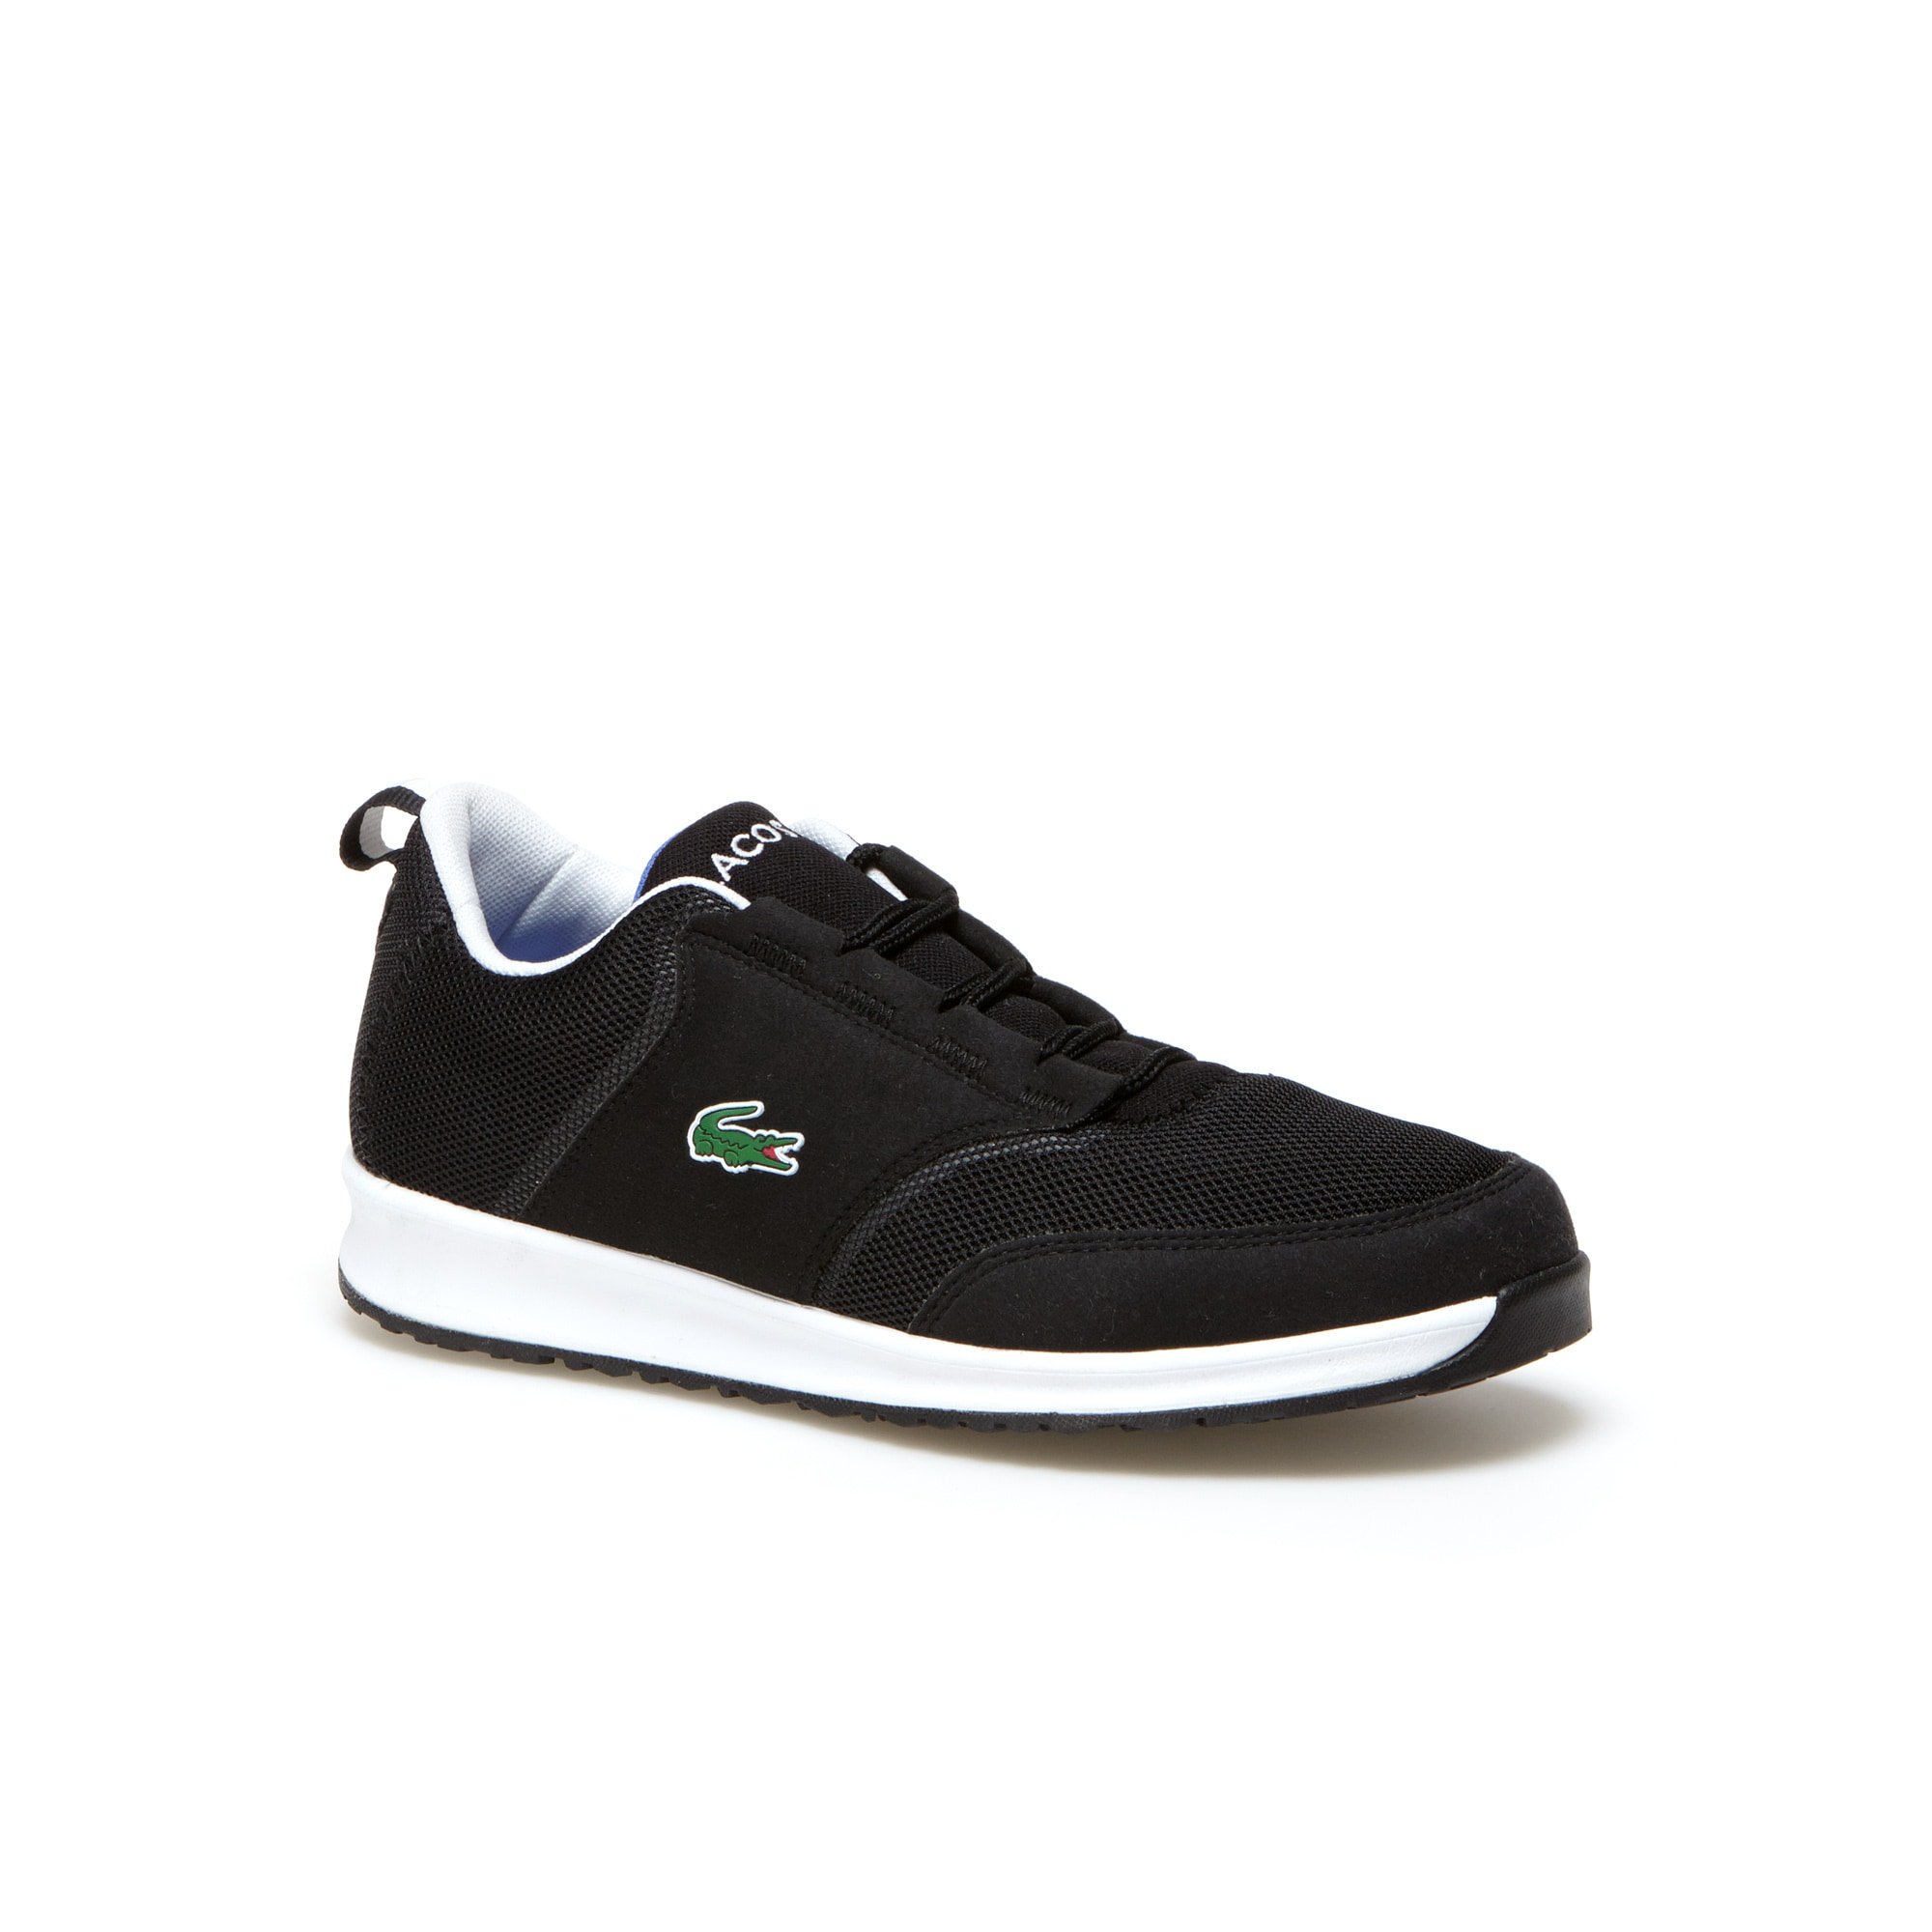 Kindersneakers L.IGHT ademend canvas